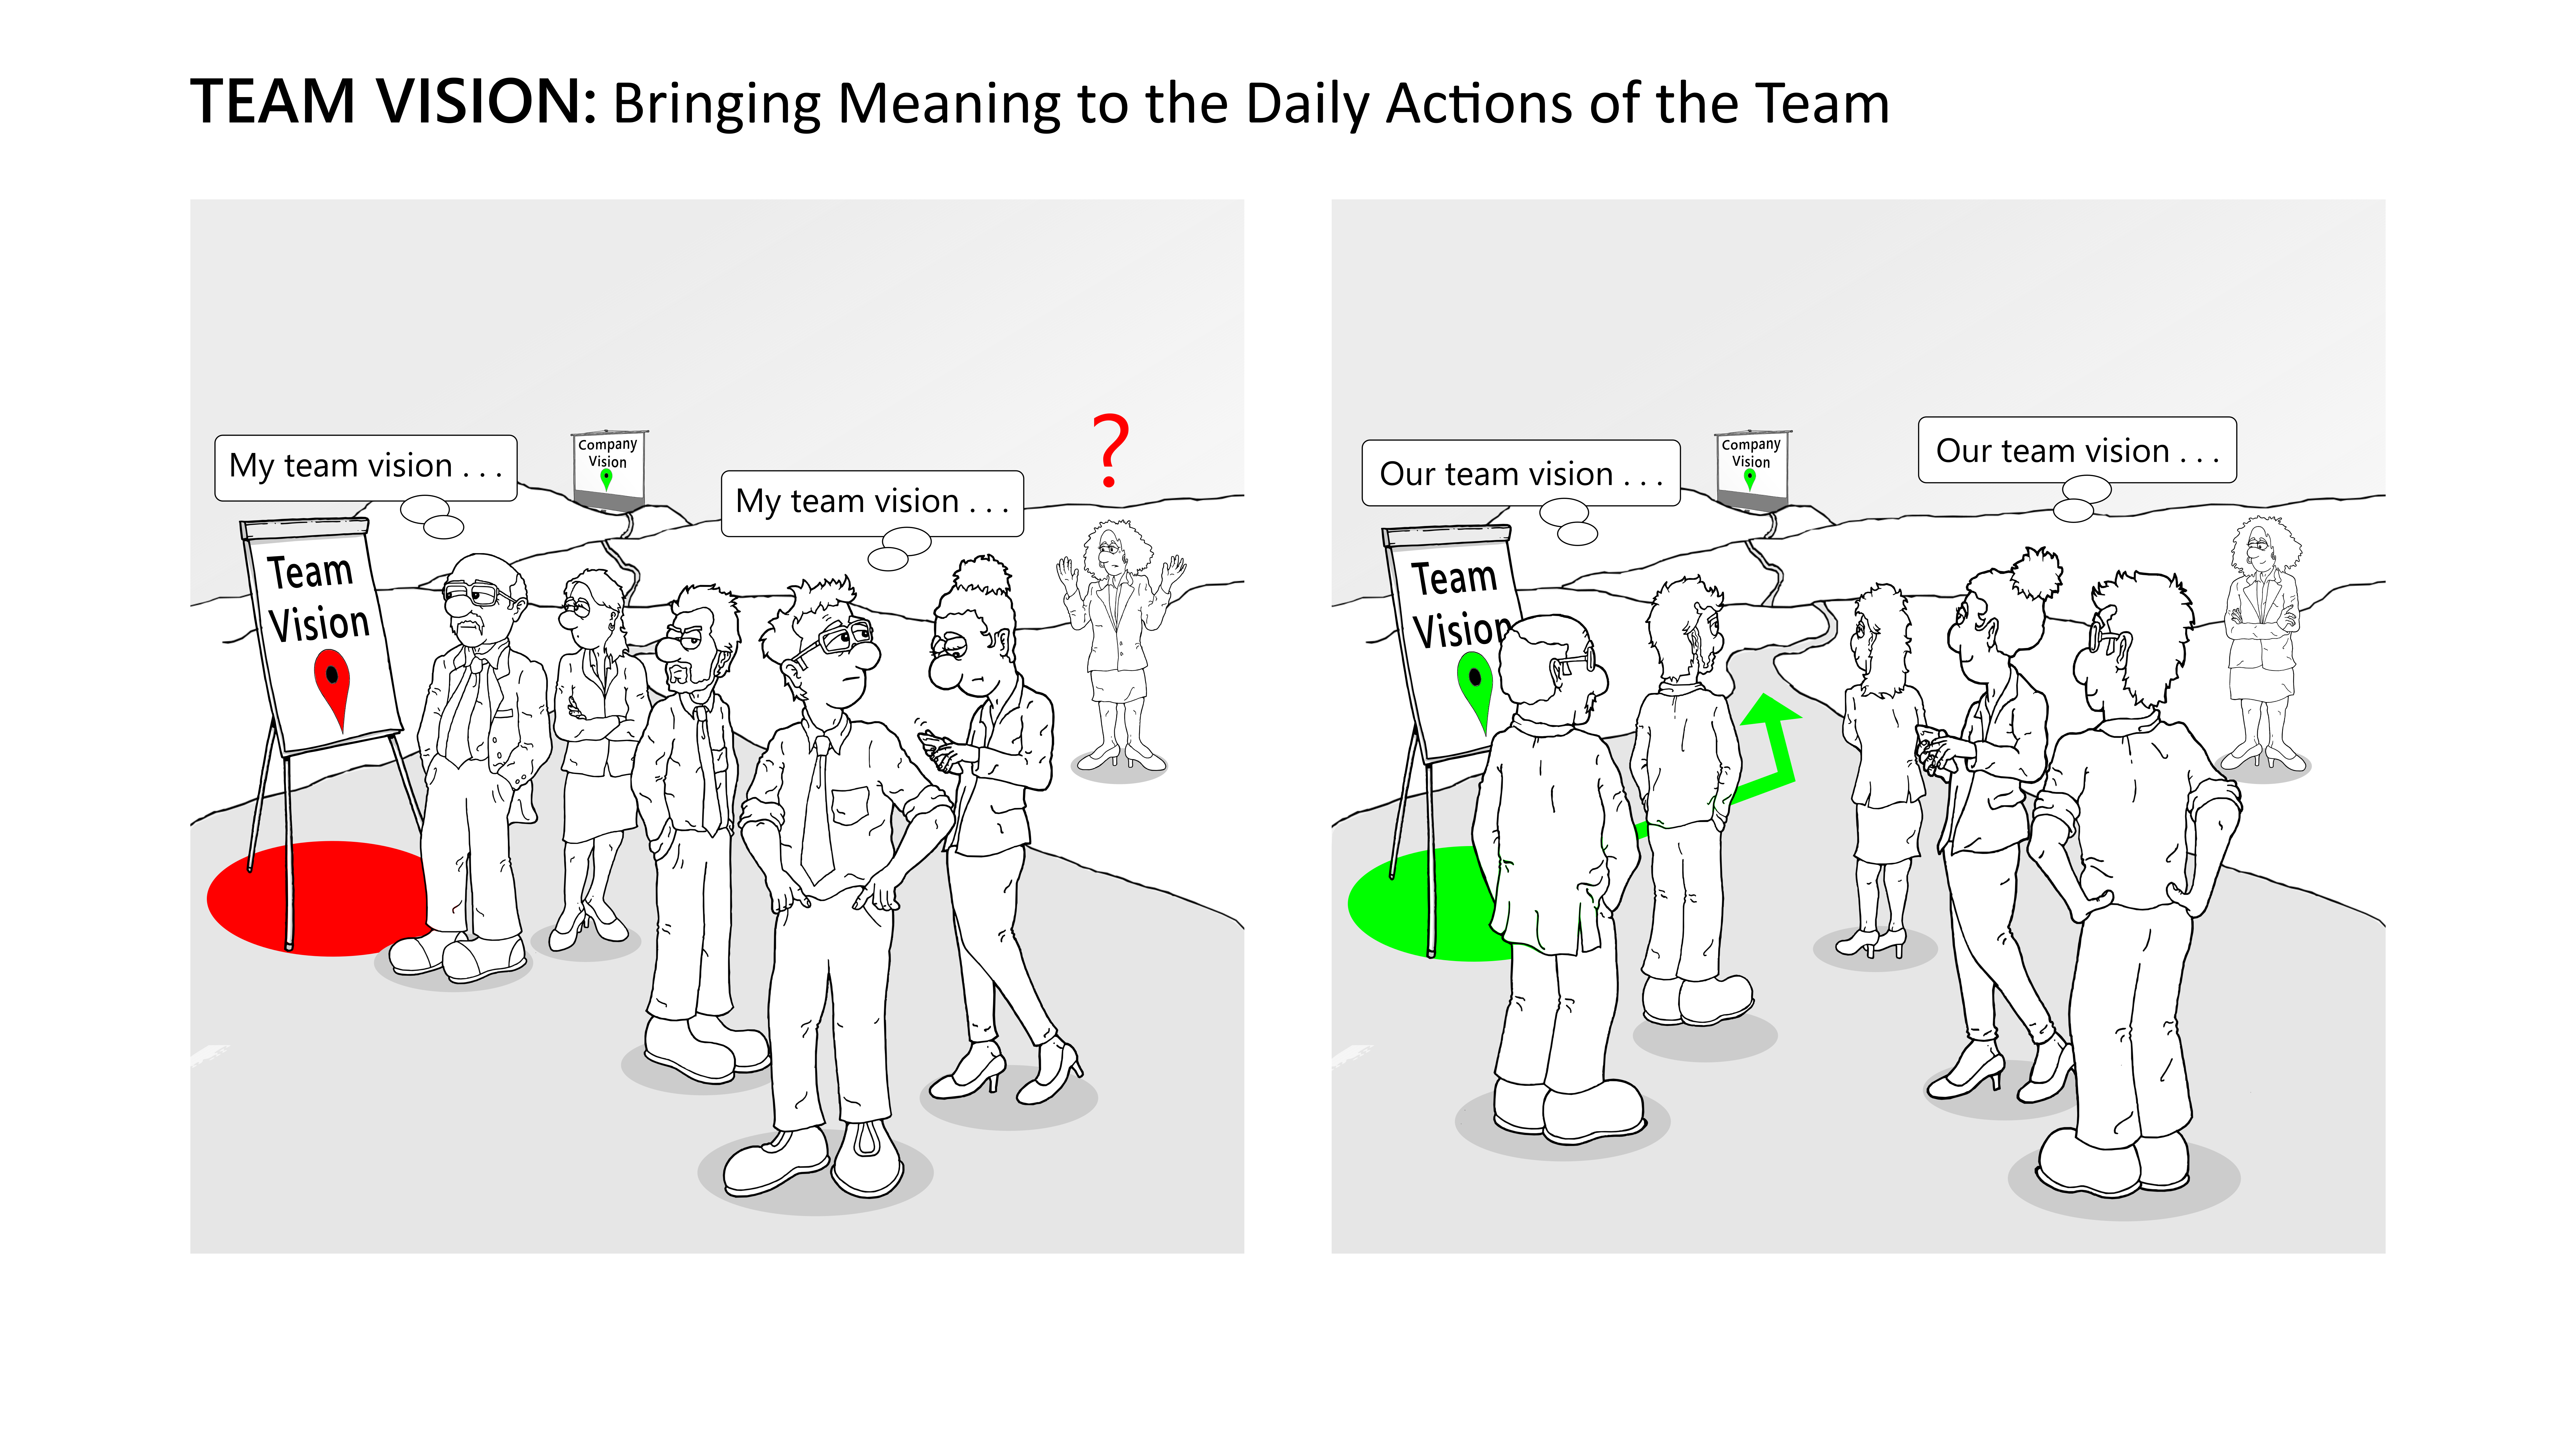 bringing meaning to the daily actions of the team